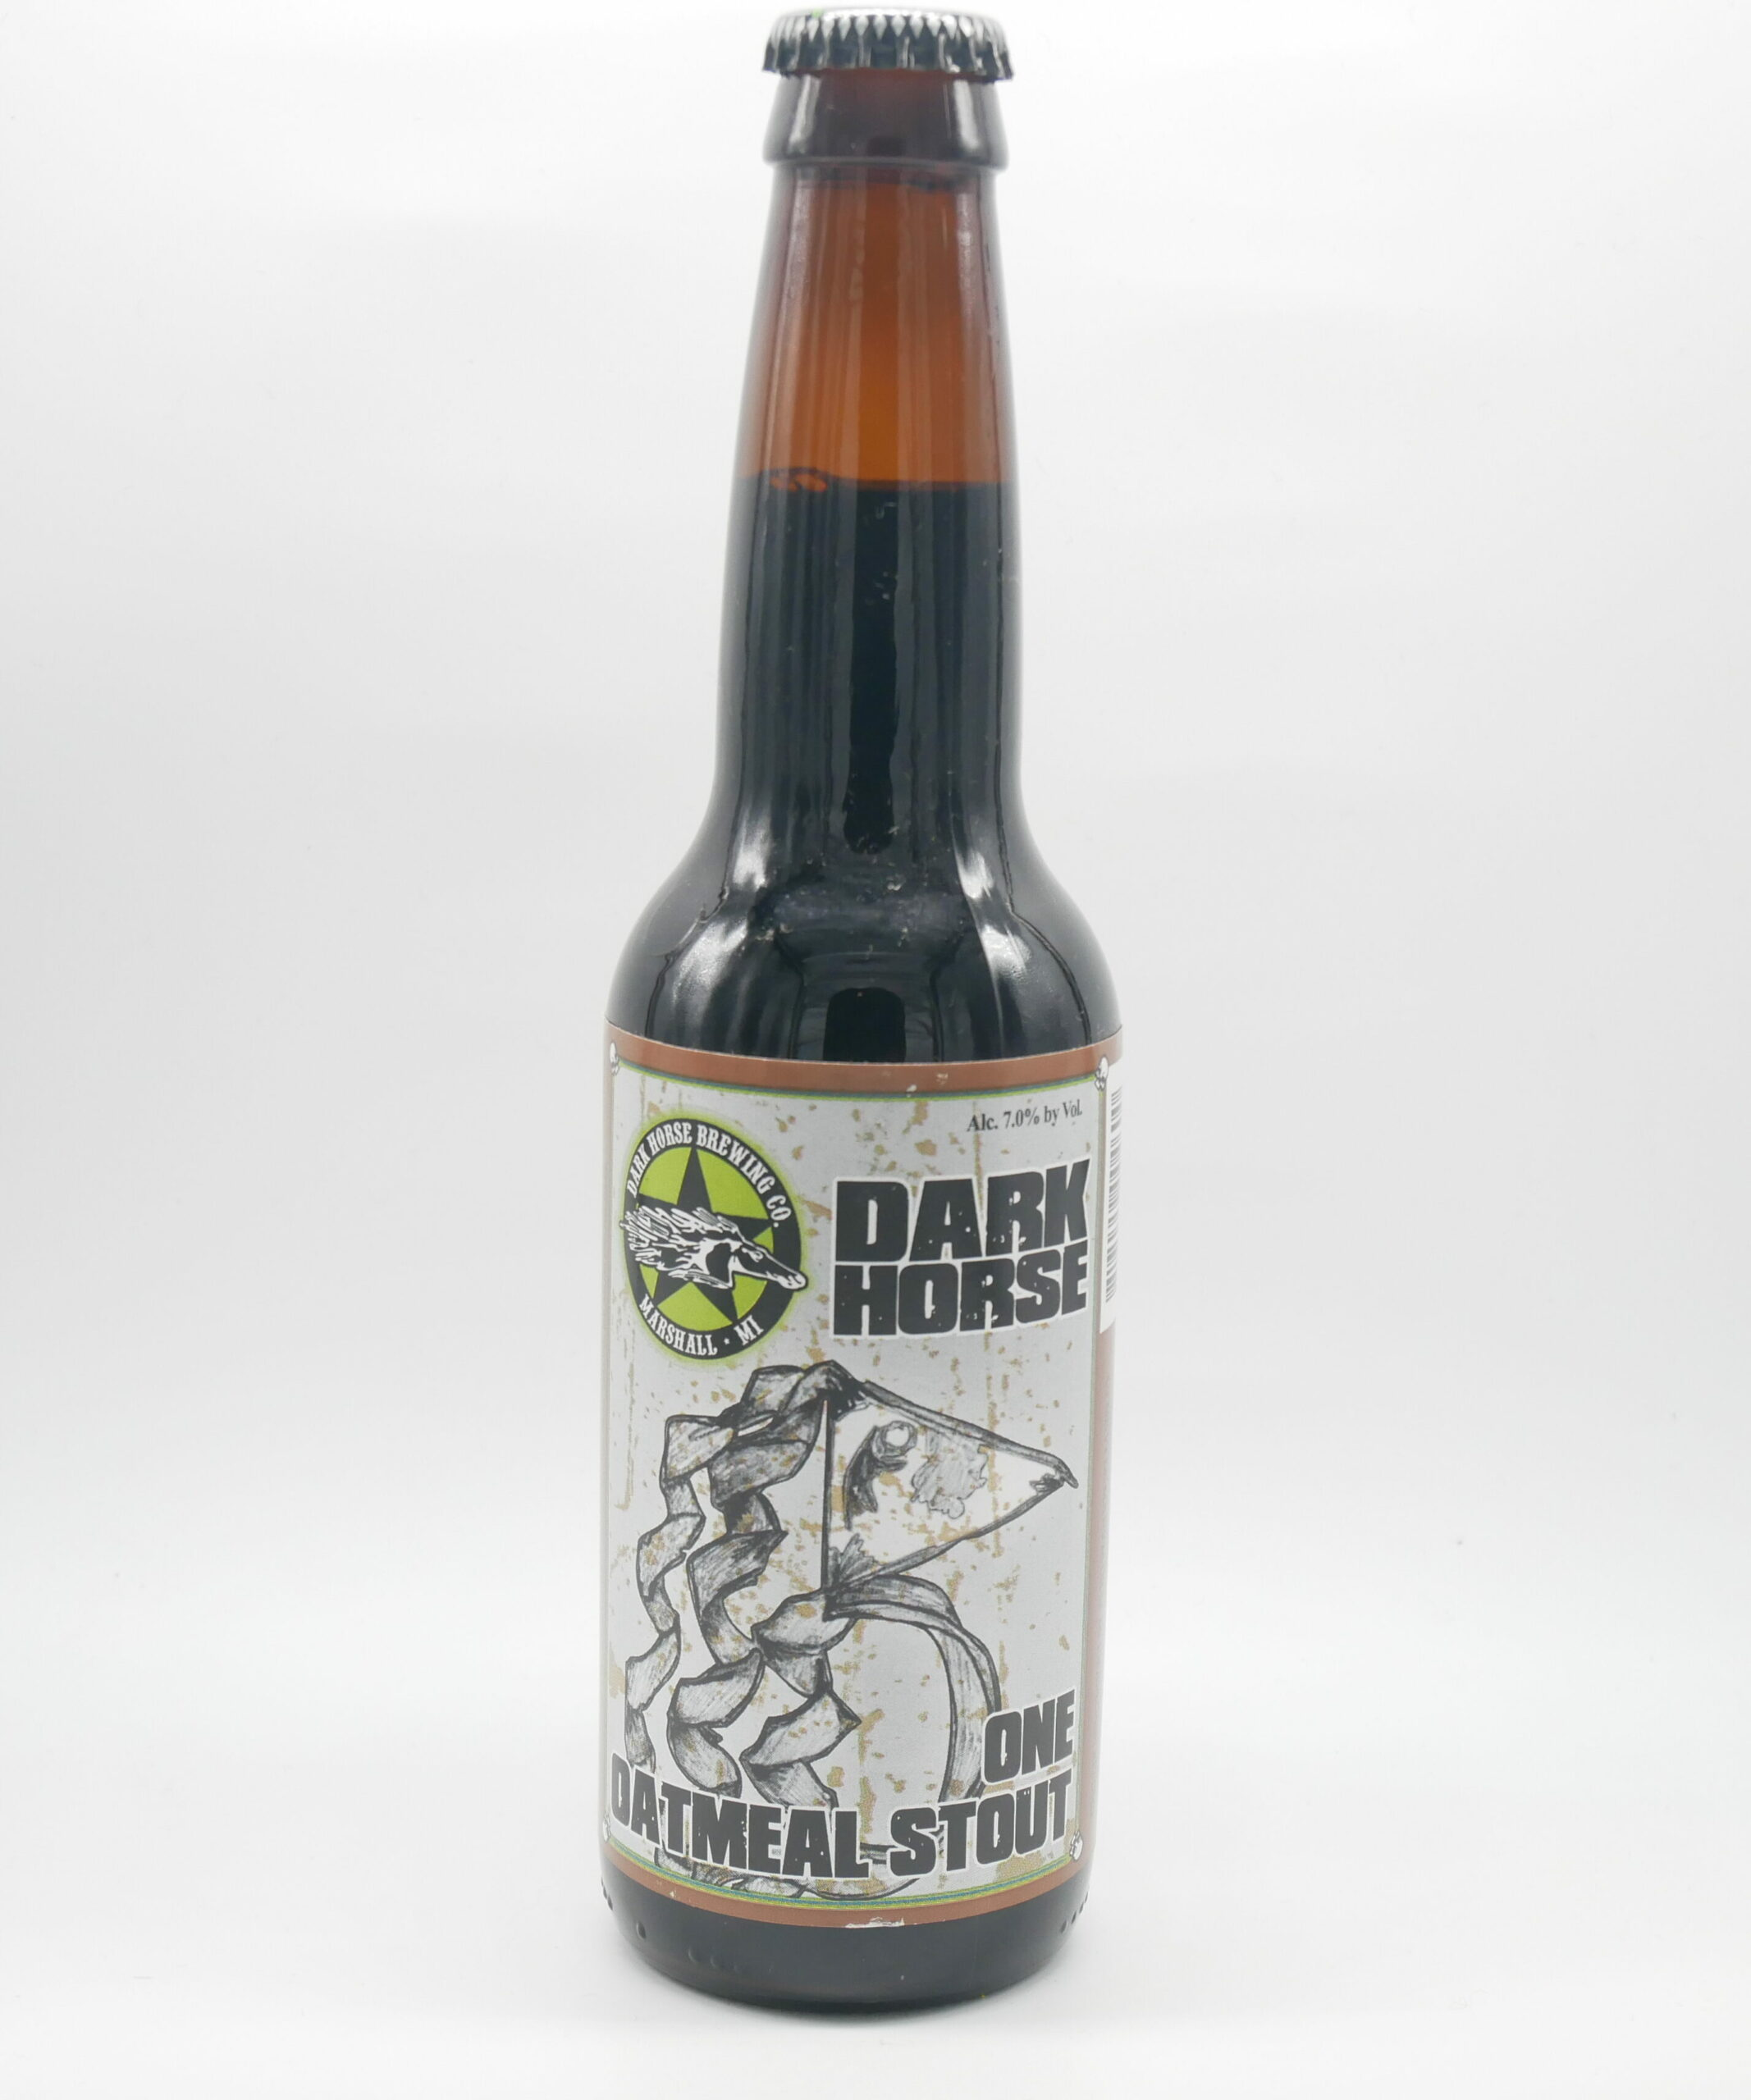 Img One Oatmeal stout